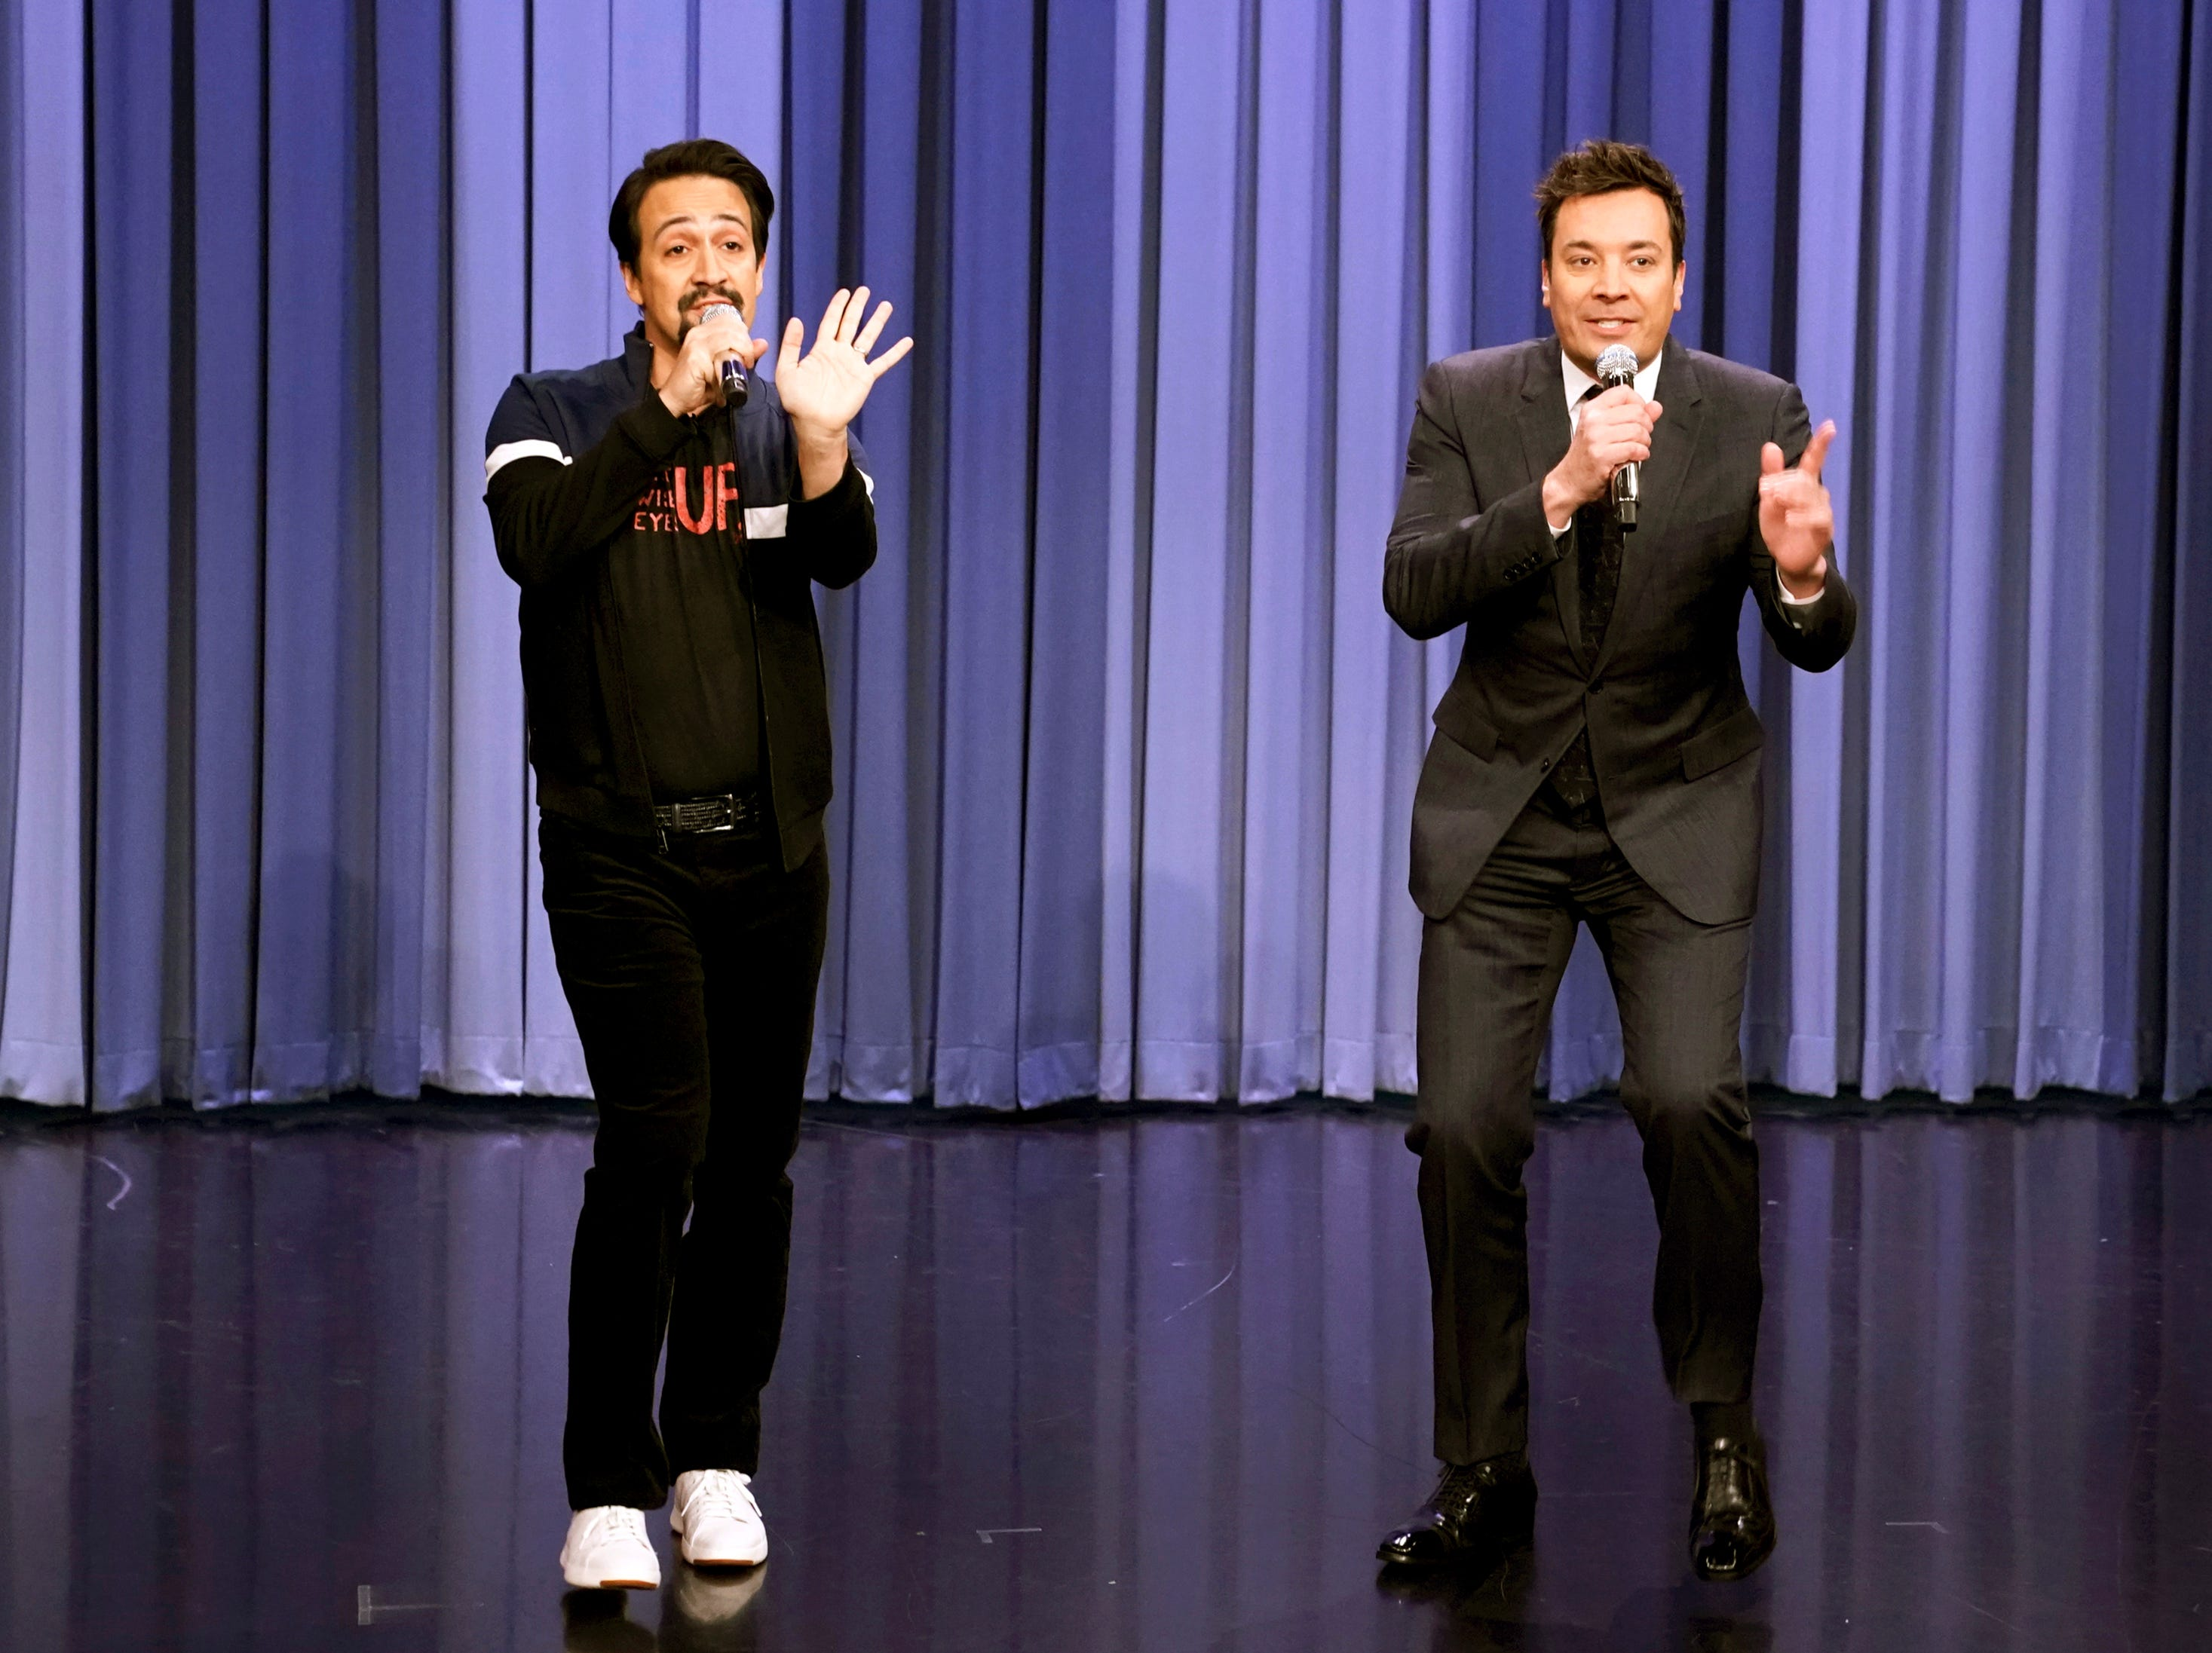 """This Dec. 17, 2018 photo released by NBC shows Lin-Manuel Miranda, left, and host Jimmy Fallon performing a medley of popular songs with altered lyrics for the holiday season on """"The Tonight Show Starring Jimmy Fallon,"""" in New York.  Fallon announced Monday that he will do a special episode from Puerto Rico on January 15. The telecast, in which Miranda will appear, will focus on the spirit and culture of Puerto Rico in its efforts to rebuild and raise awareness following the devastating hurricane that struck the U.S. territory on Sept. 20, 2017.  Miranda will reprise his lead role in the musical """"Hamilton"""" from Jan. 8-27 at the University of Puerto Rico to raise money for the Flamboyan Arts Fund. (Andrew Lipovsky/NBC via AP) ORG XMIT: NYET215"""